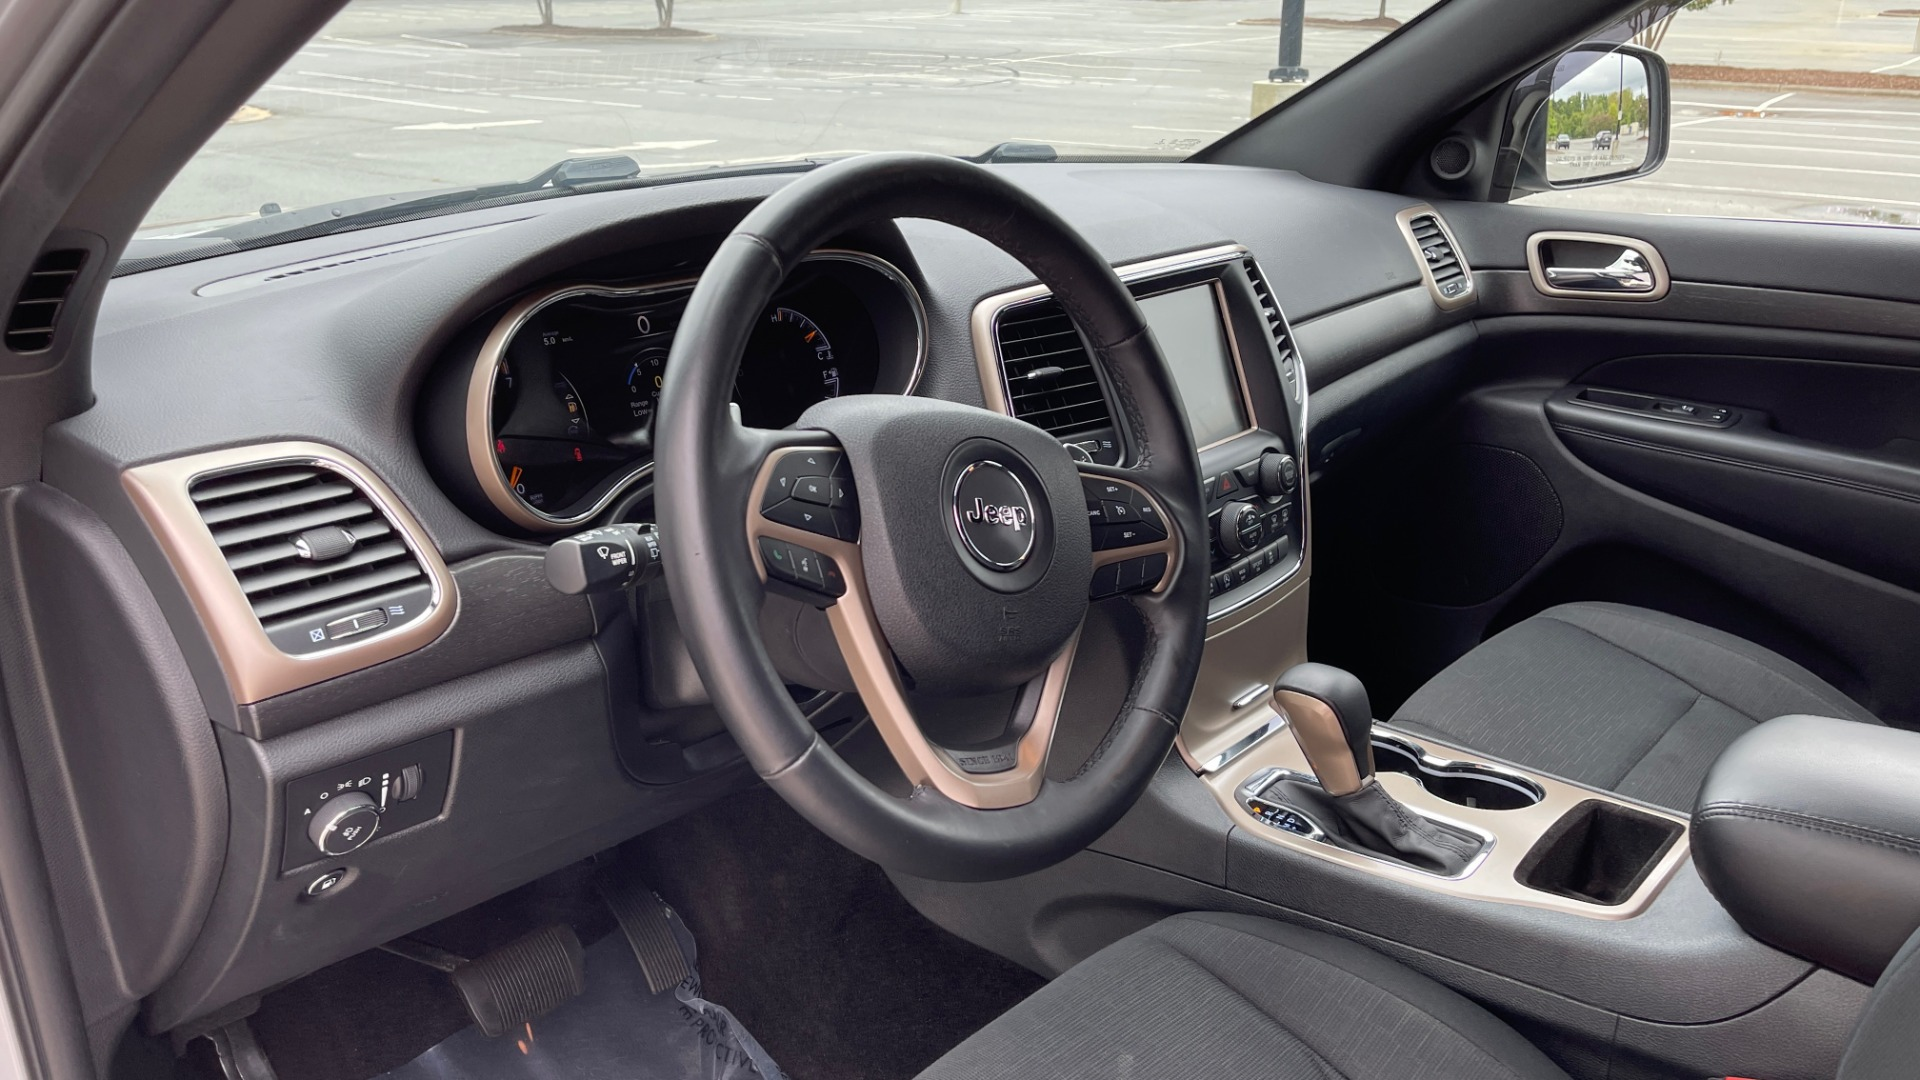 Used 2017 Jeep GRAND CHEROKEE LAREDO E 4X4 / KEYLESS-GO / 8.4IN TOUCH SCREEN / REARVIEW for sale $27,595 at Formula Imports in Charlotte NC 28227 25